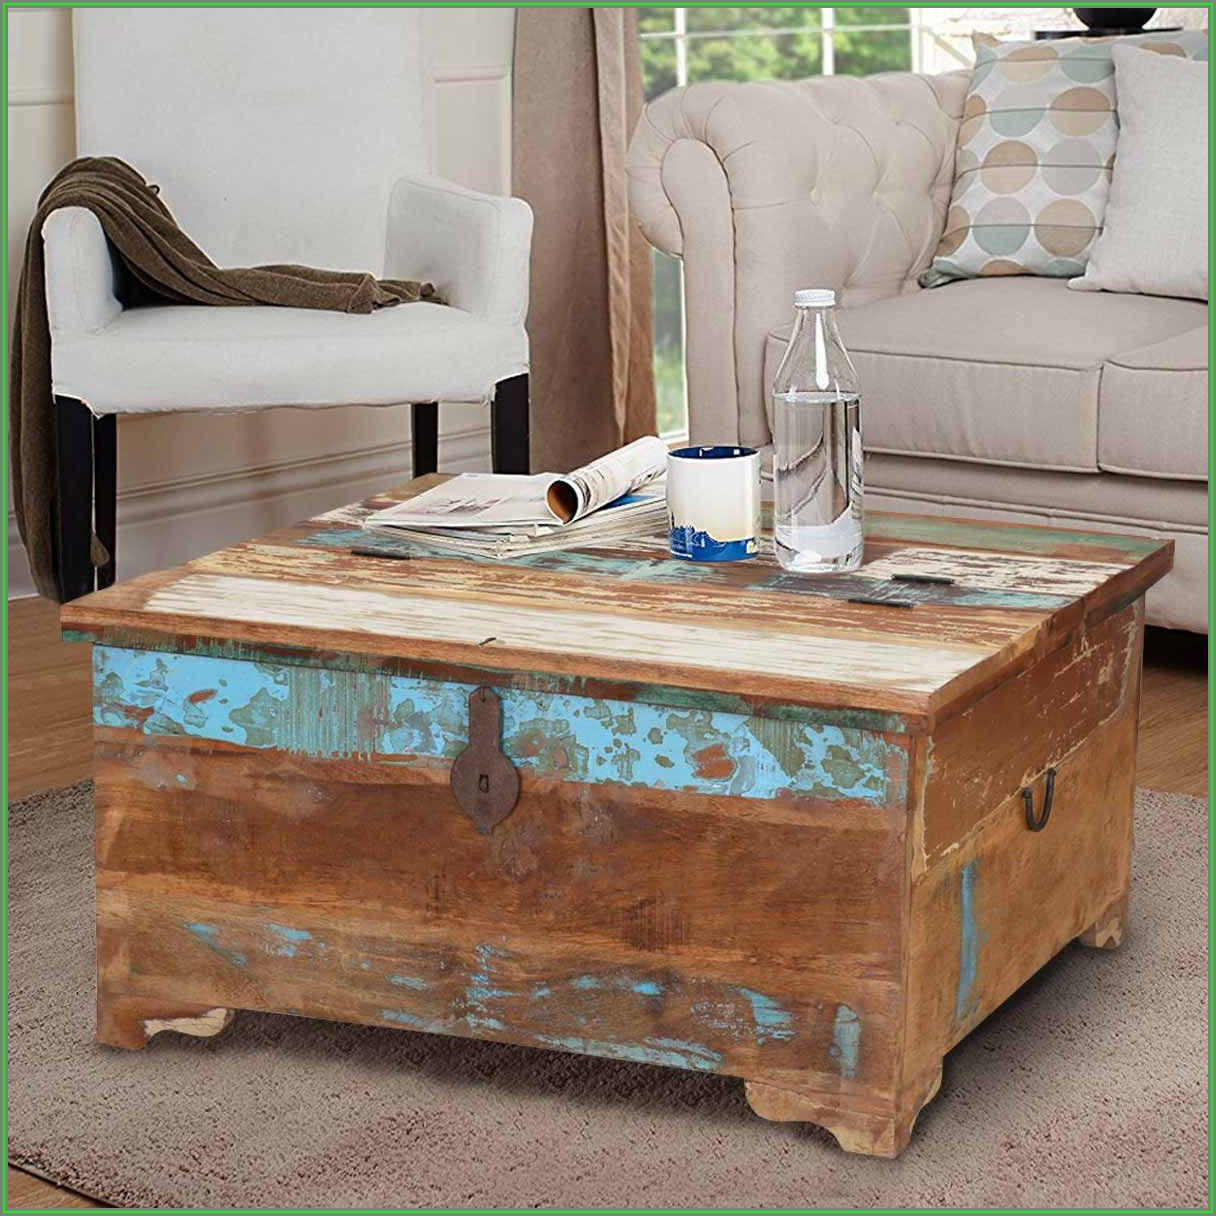 Rustic Wood Coffee Table With Storage